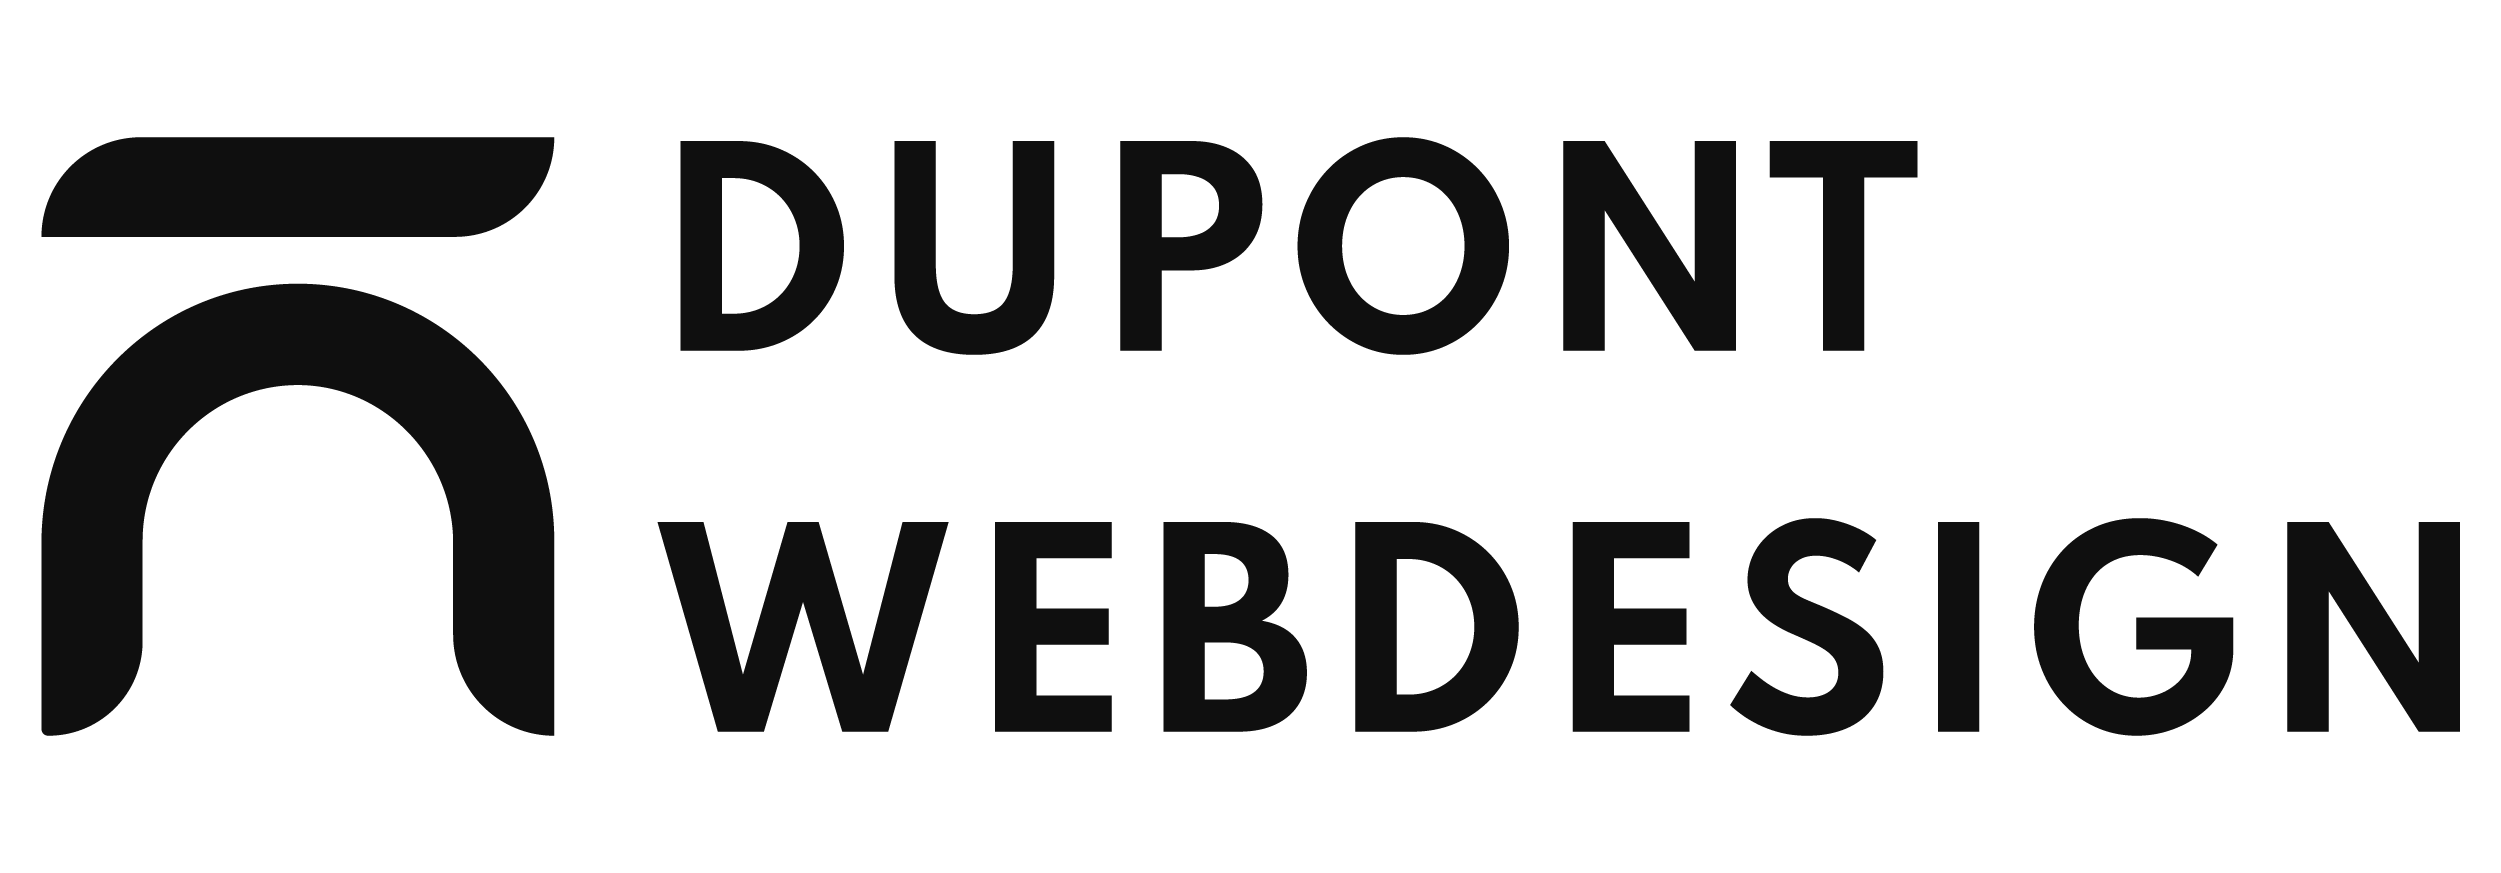 Dupont Webdesign Logo Large